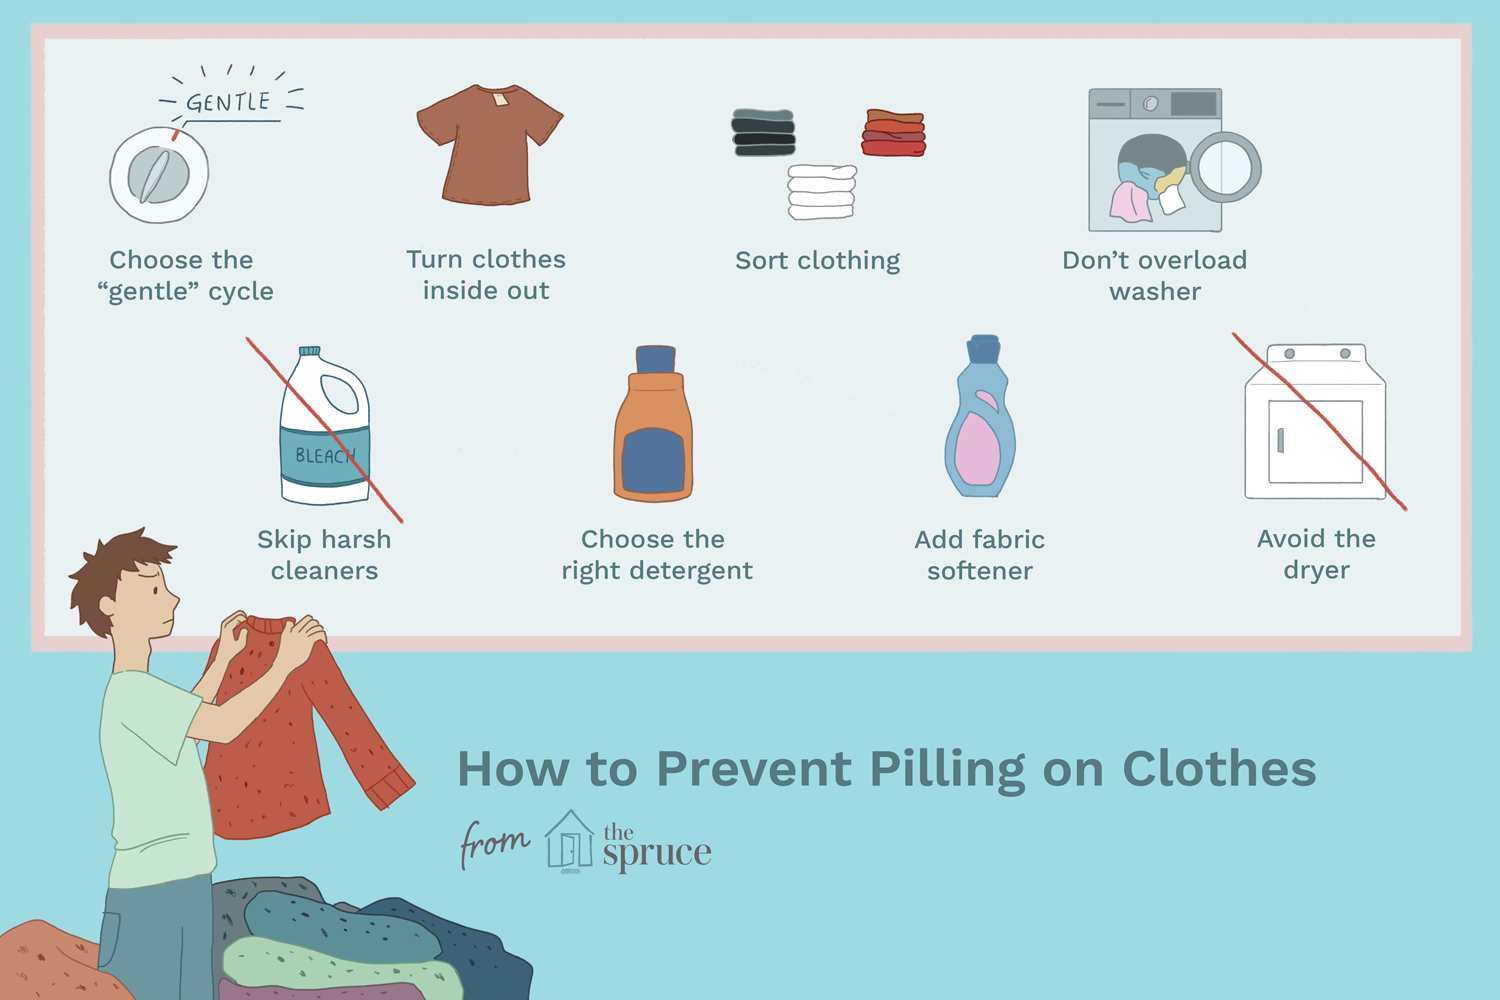 Illustration of how to prevent pilling on clothing